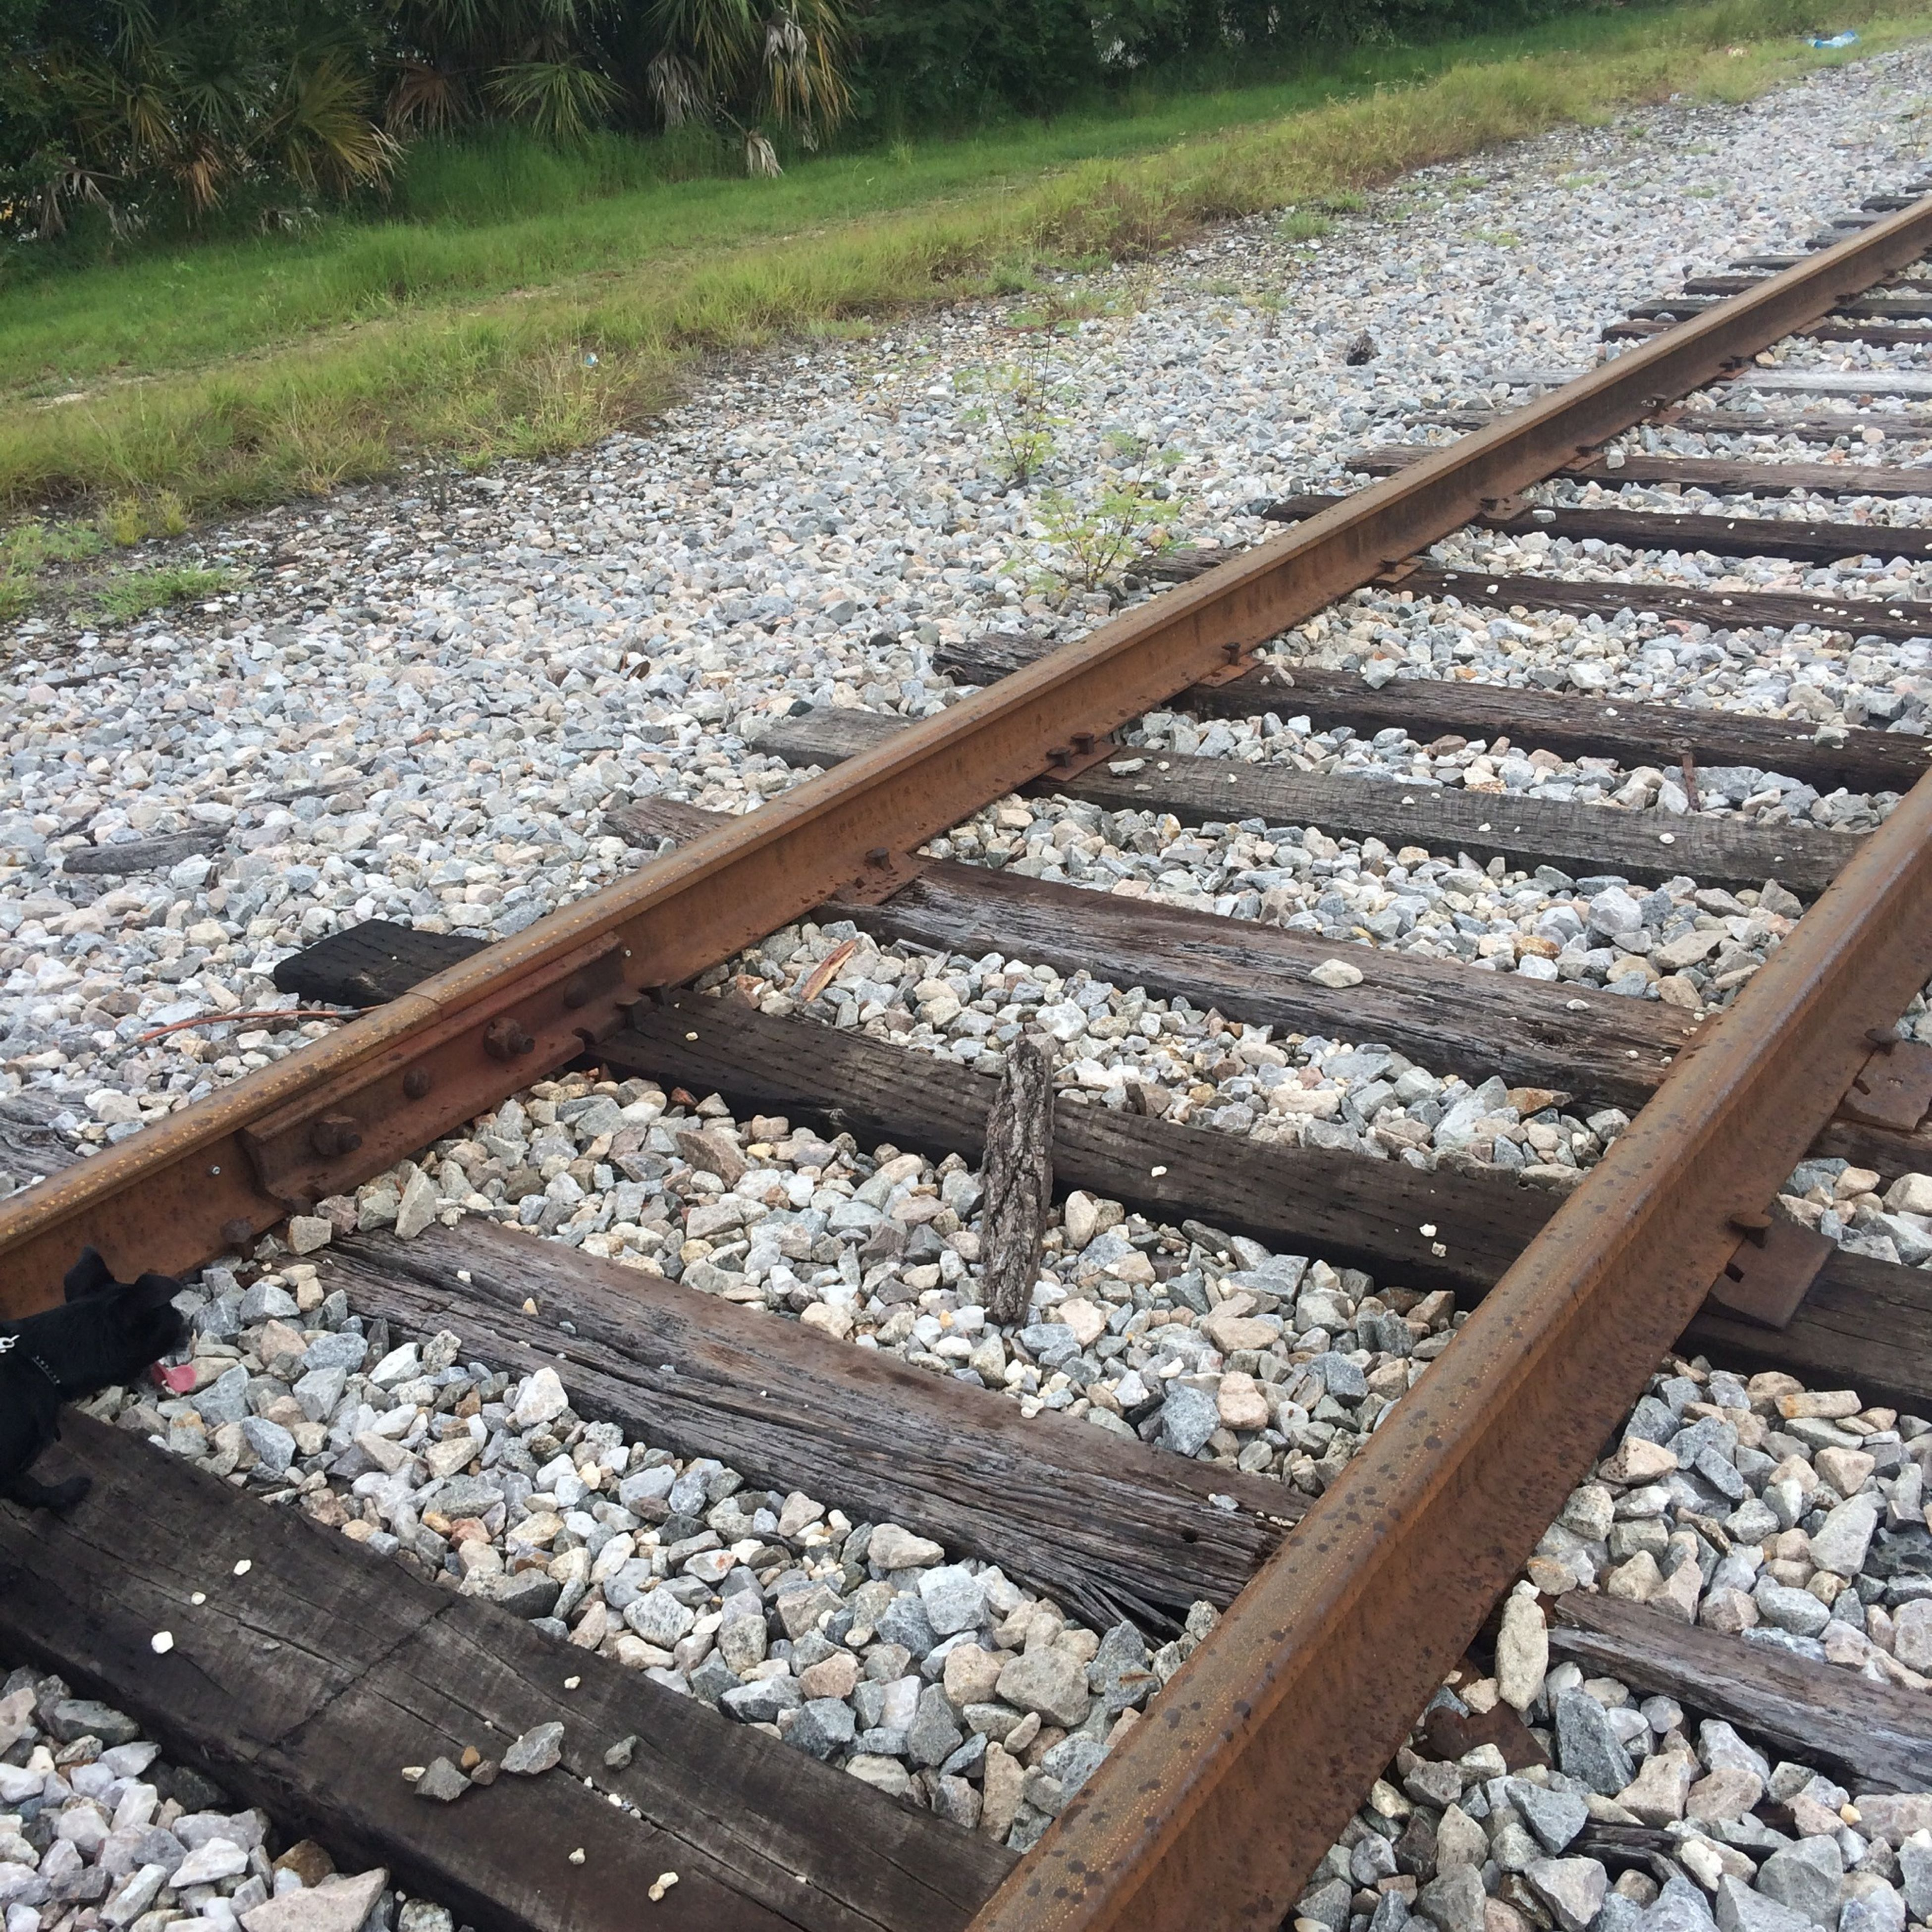 railroad track, rail transportation, high angle view, stone - object, metal, abundance, gravel, transportation, day, railway track, outdoors, large group of objects, no people, nature, diminishing perspective, rock - object, field, public transportation, wood - material, railing